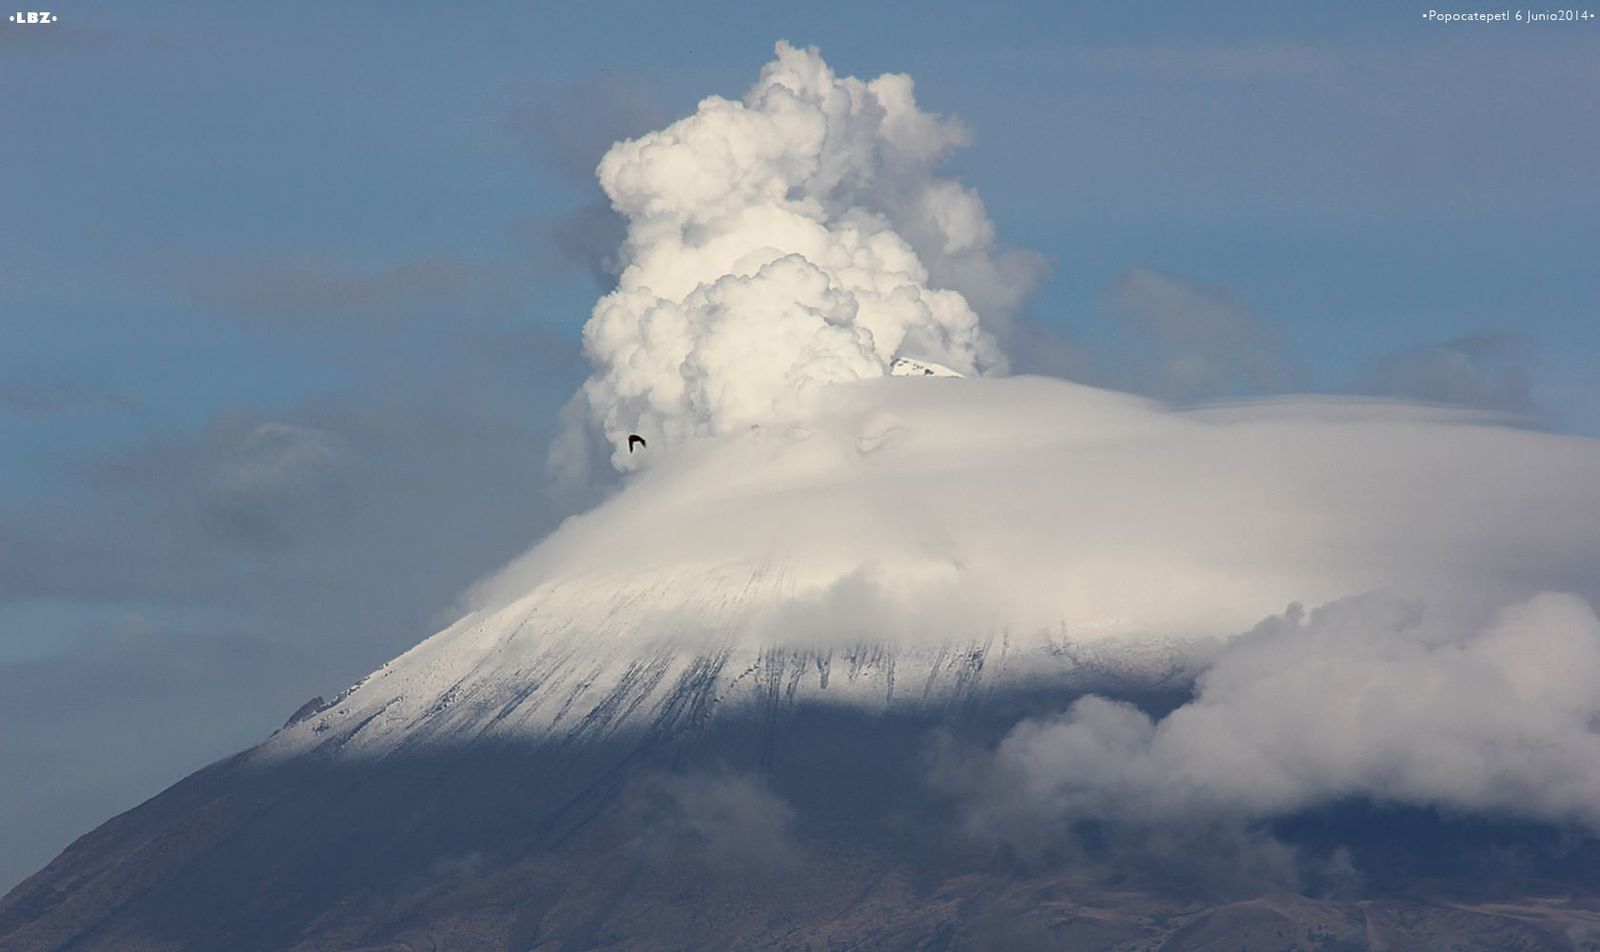 Popocatépetl - photo LBZ / 06/06/2014